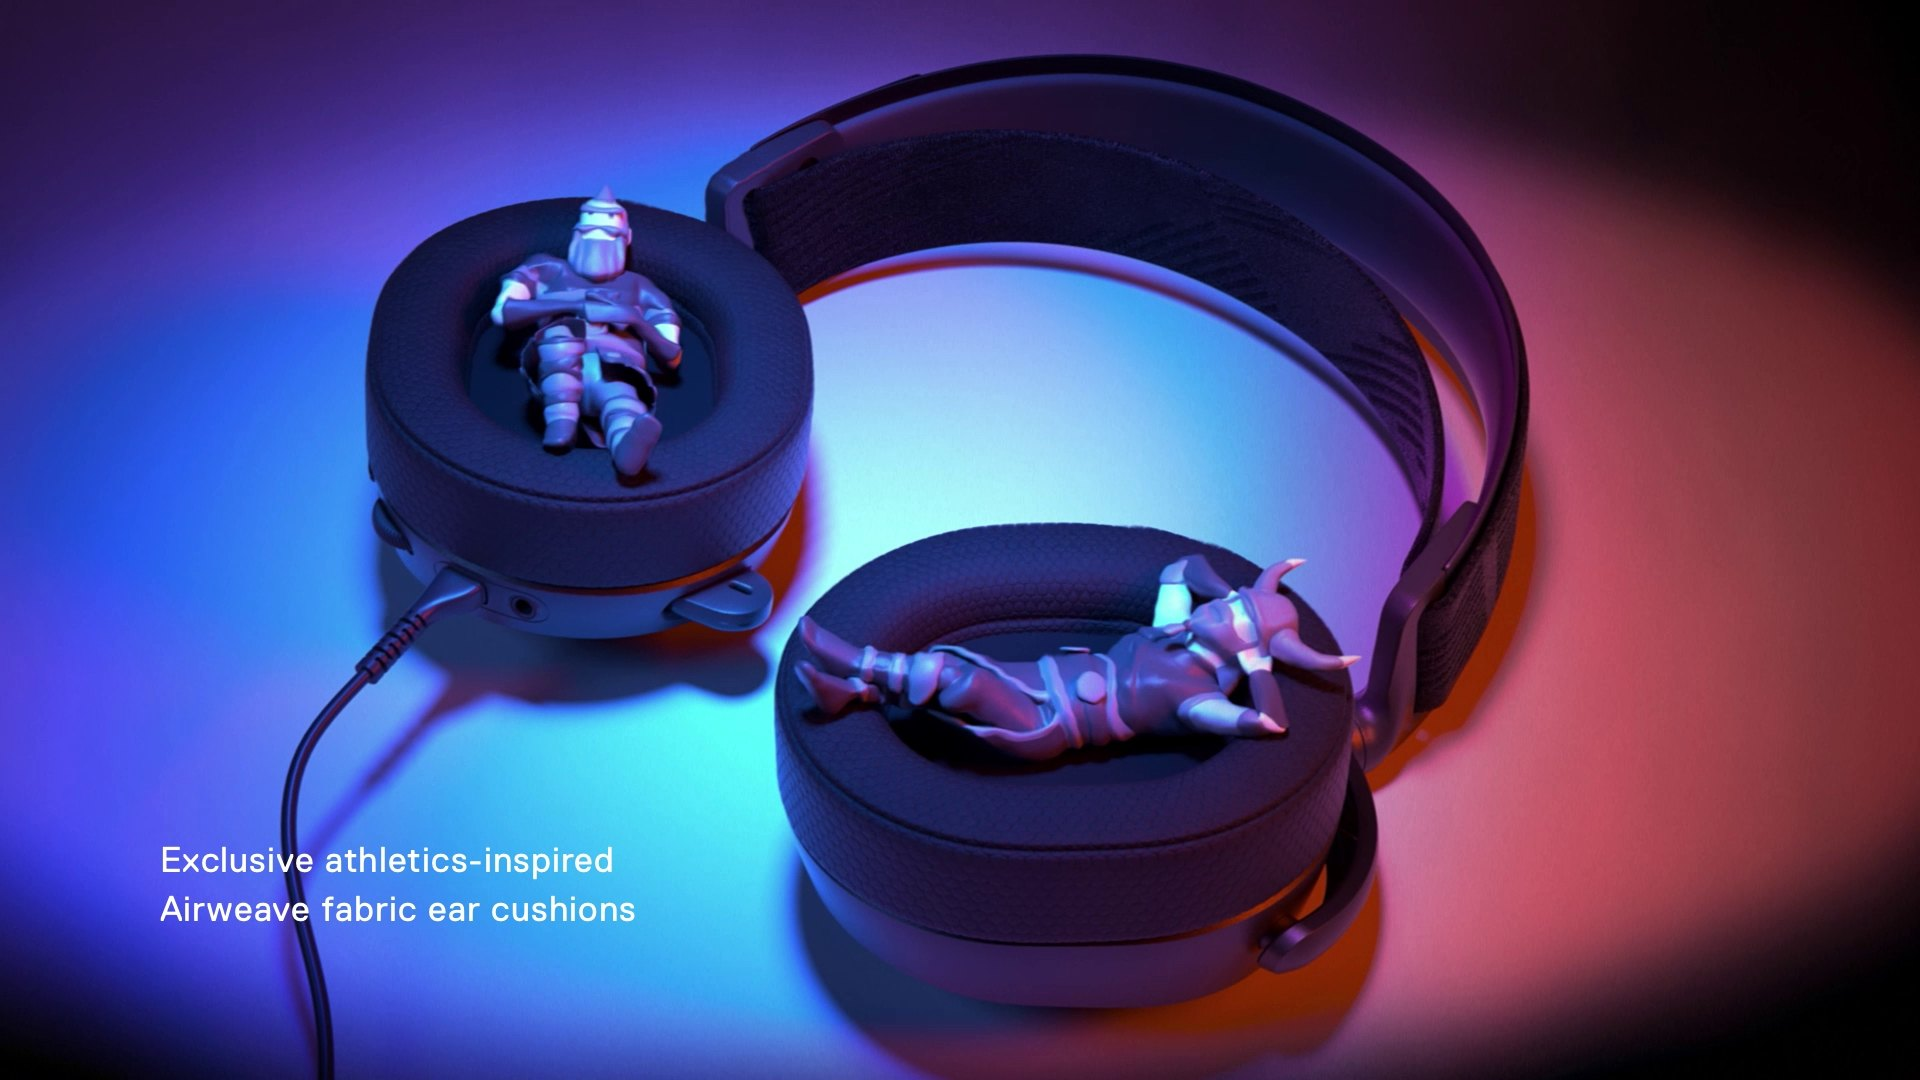 hight resolution of the arctis pro headset features premium speaker drivers with high density neodymium magnets that reproduce hi res audio out to 40 000 hz nearly double what